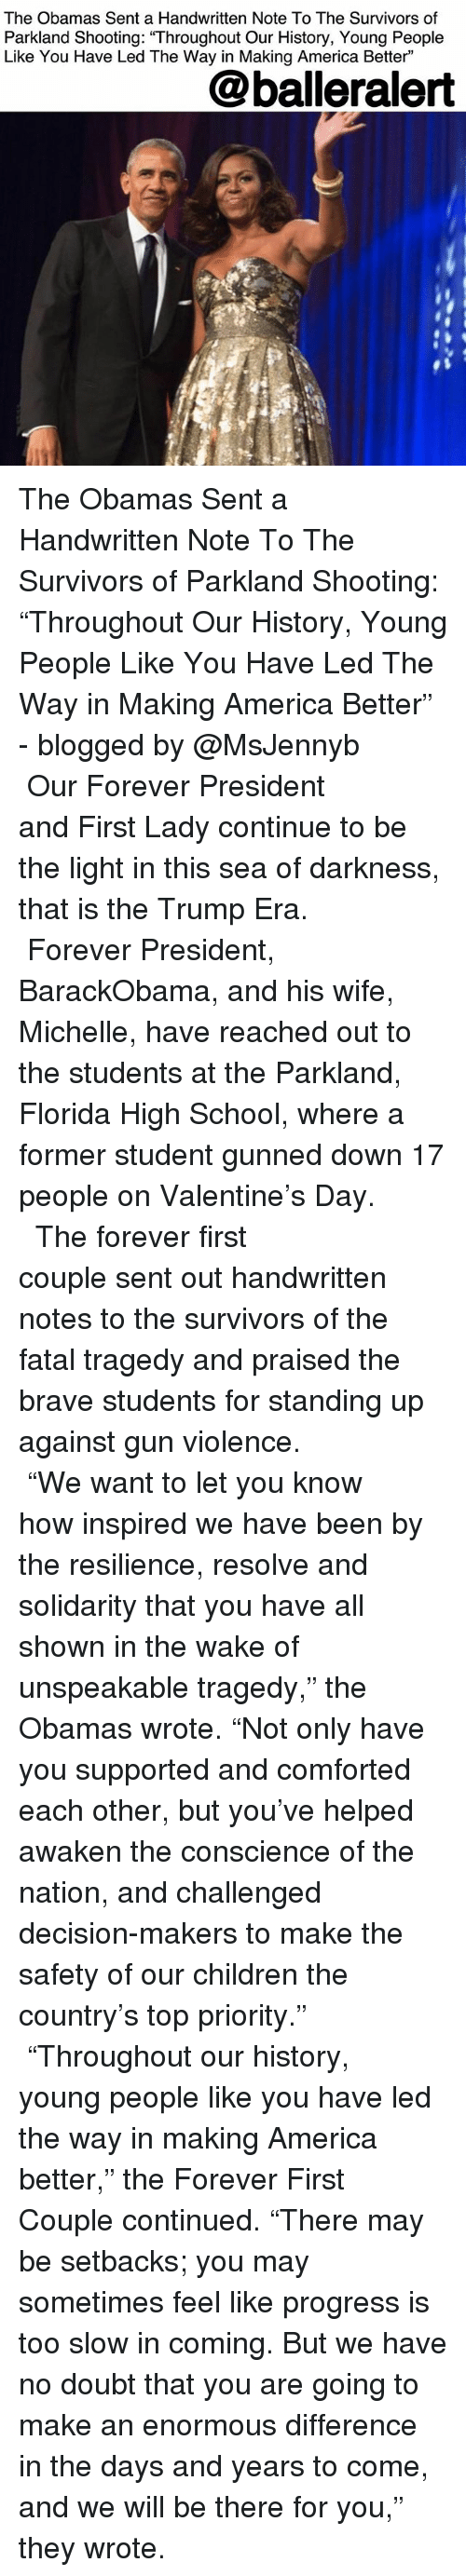 """America, Children, and Memes: The Obamas Sent a Handwritten Note To The Survivors of  Parkland Shooting: """"Throughout Our History, Young People  Like You Have Led The Way in Making America Better""""  @balleralert The Obamas Sent a Handwritten Note To The Survivors of Parkland Shooting: """"Throughout Our History, Young People Like You Have Led The Way in Making America Better"""" - blogged by @MsJennyb ⠀⠀⠀⠀⠀⠀⠀⠀⠀ ⠀⠀⠀⠀⠀⠀⠀⠀⠀ Our Forever President and First Lady continue to be the light in this sea of darkness, that is the Trump Era. ⠀⠀⠀⠀⠀⠀⠀⠀⠀ ⠀⠀⠀⠀⠀⠀⠀⠀⠀ Forever President, BarackObama, and his wife, Michelle, have reached out to the students at the Parkland, Florida High School, where a former student gunned down 17 people on Valentine's Day. ⠀⠀⠀⠀⠀⠀⠀⠀⠀ ⠀⠀⠀⠀⠀⠀⠀⠀⠀ The forever first couple sent out handwritten notes to the survivors of the fatal tragedy and praised the brave students for standing up against gun violence. ⠀⠀⠀⠀⠀⠀⠀⠀⠀ ⠀⠀⠀⠀⠀⠀⠀⠀⠀ """"We want to let you know how inspired we have been by the resilience, resolve and solidarity that you have all shown in the wake of unspeakable tragedy,"""" the Obamas wrote. """"Not only have you supported and comforted each other, but you've helped awaken the conscience of the nation, and challenged decision-makers to make the safety of our children the country's top priority."""" ⠀⠀⠀⠀⠀⠀⠀⠀⠀ ⠀⠀⠀⠀⠀⠀⠀⠀⠀ """"Throughout our history, young people like you have led the way in making America better,"""" the Forever First Couple continued. """"There may be setbacks; you may sometimes feel like progress is too slow in coming. But we have no doubt that you are going to make an enormous difference in the days and years to come, and we will be there for you,"""" they wrote."""